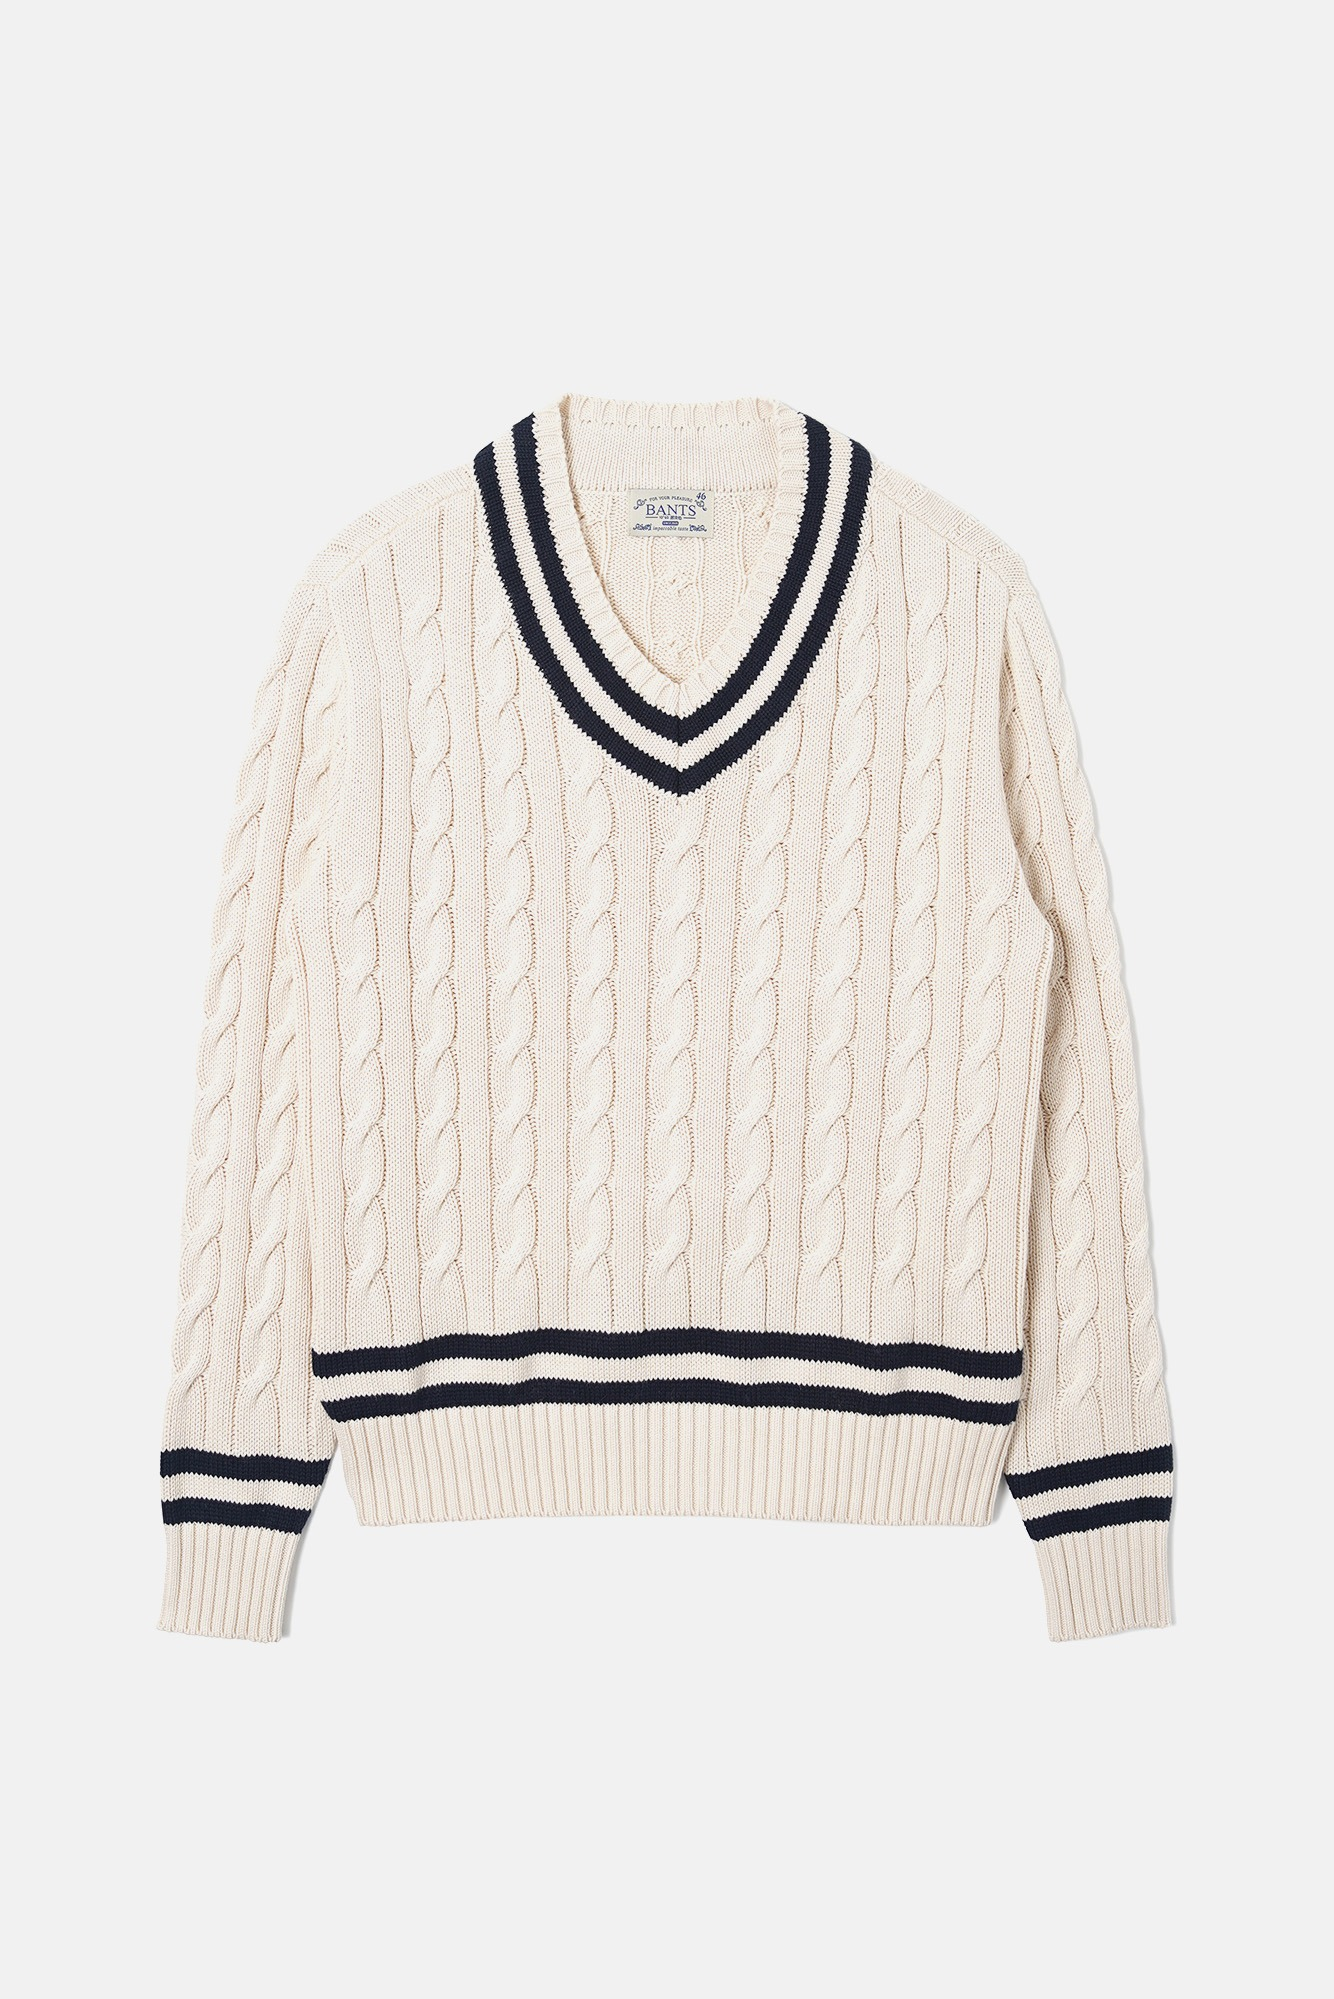 BANTS OPD Cotton Cricket Knit